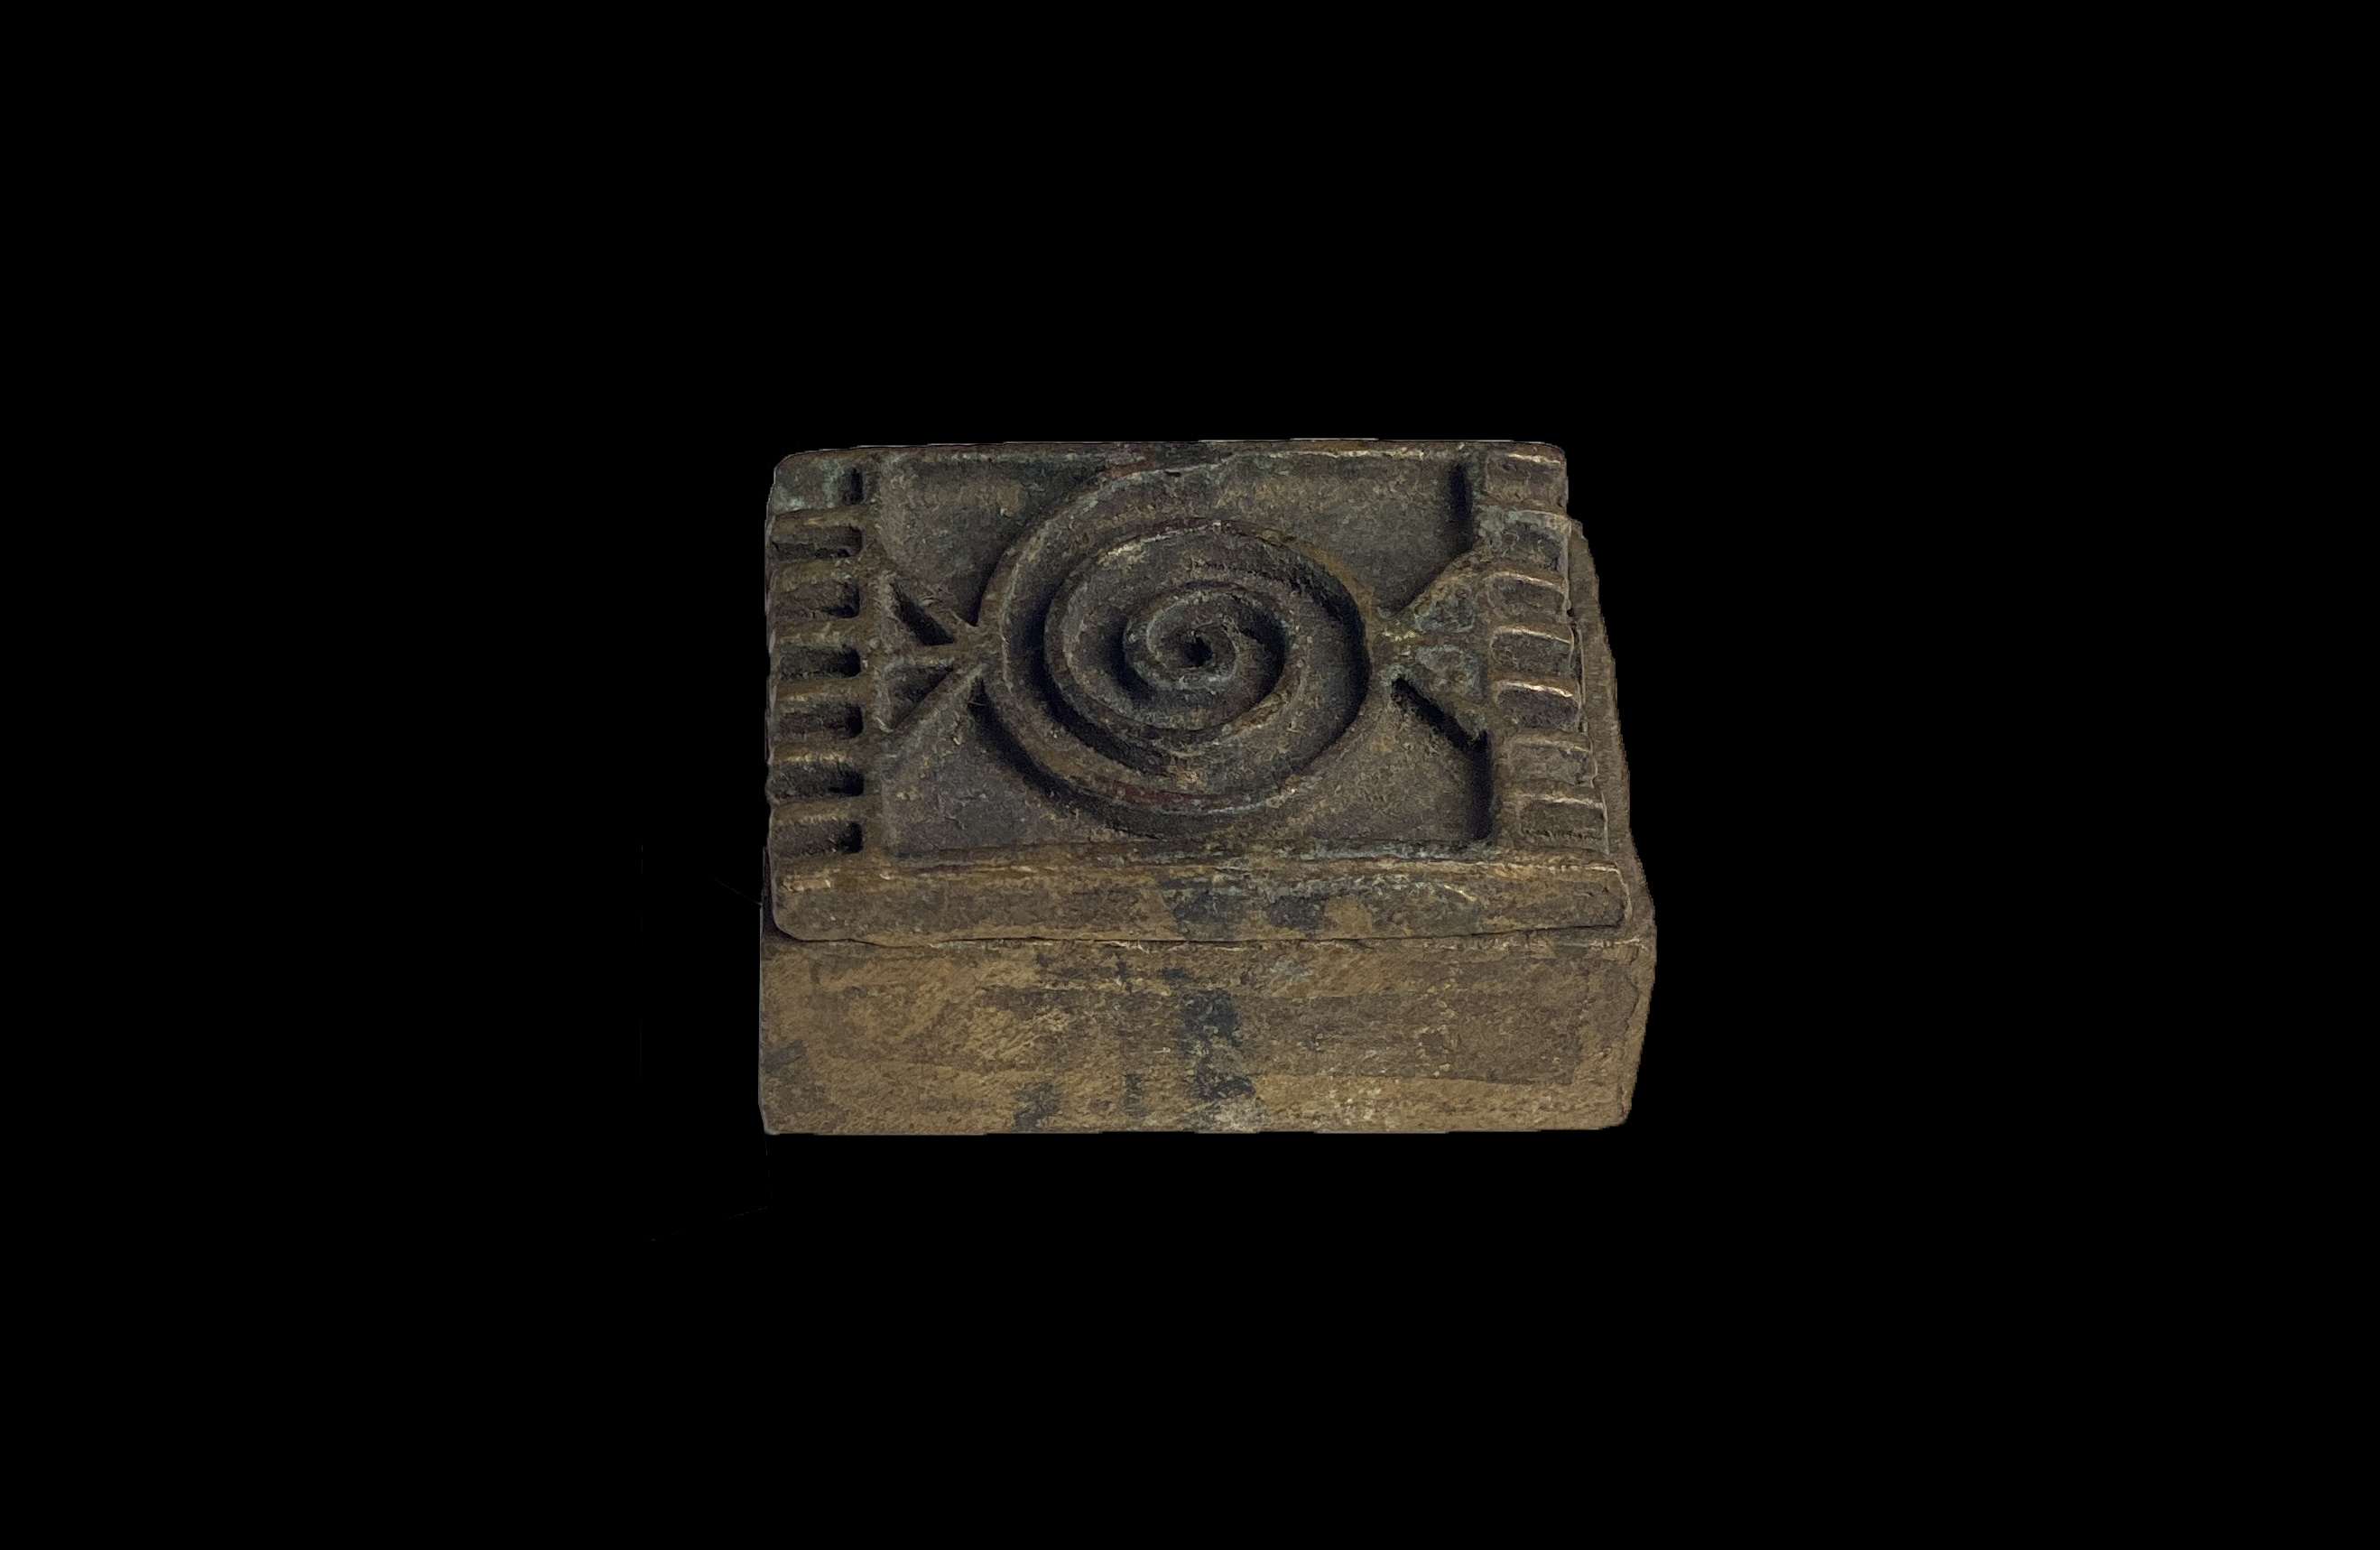 Bronze Box with Spiral Design on Lid - Ashanti People, Ghana